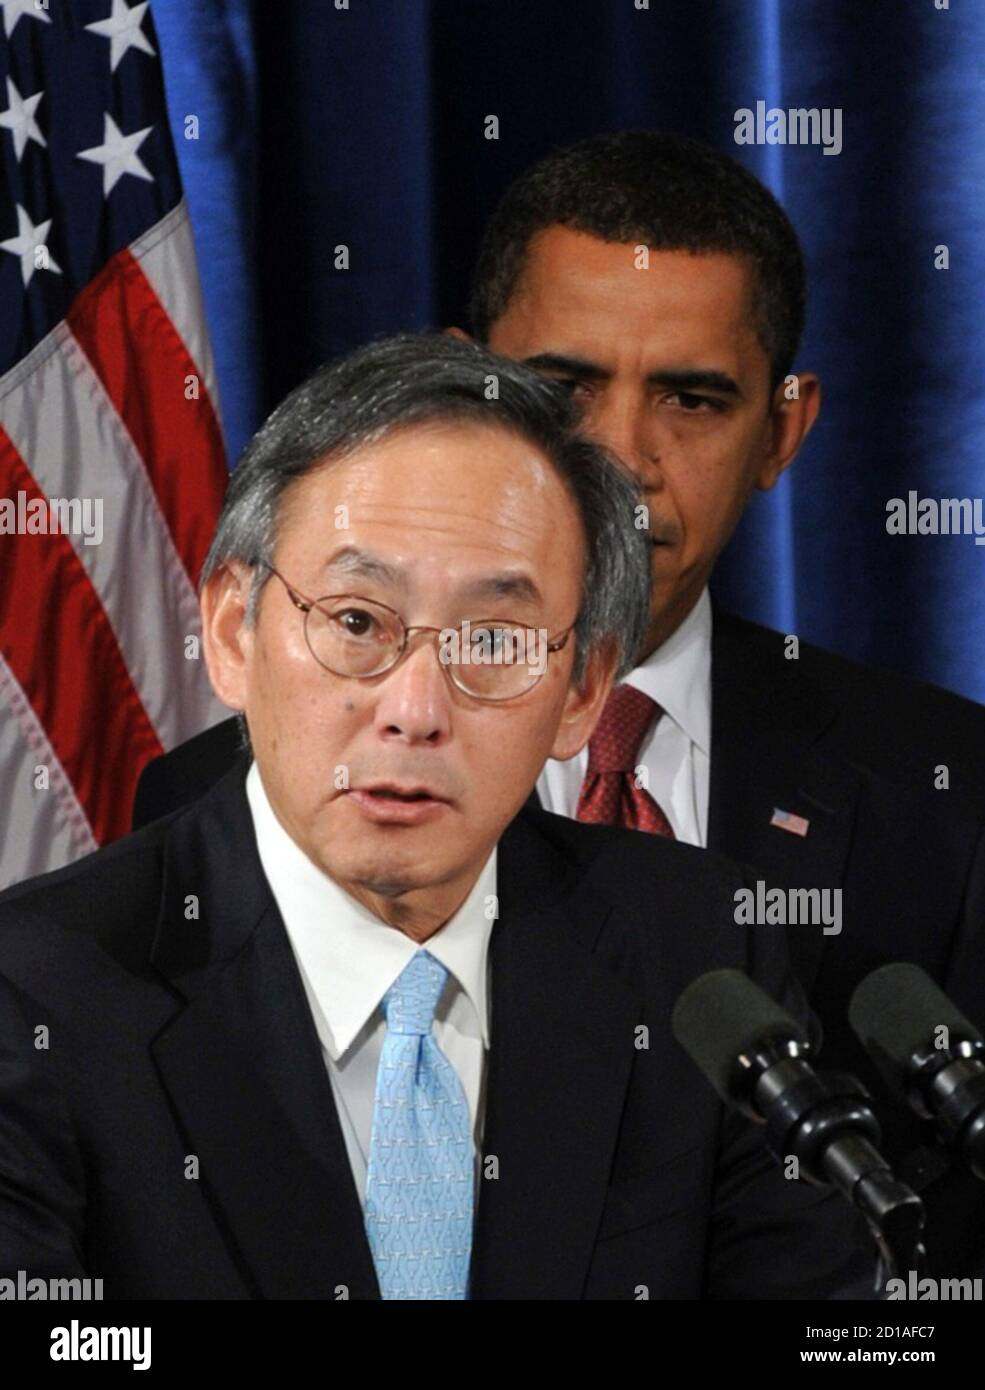 U.S. President-elect Barack Obama (R) looks on as Steven Chu, director of Lawrence Berkeley National Lab, speaks after being introduced as Obama's Energy Secretary nominee during a news conference in Chicago, December 15, 2008. Obama also named former Environmental Protection Agency chief Carol Browner to head a new council to coordinate White House energy, climate and environment policies, and Lisa Jackson, chief of staff for New Jersey's governor, to run the EPA.     REUTERS/Stephen J. Carrera (UNITED STATES) Stock Photo